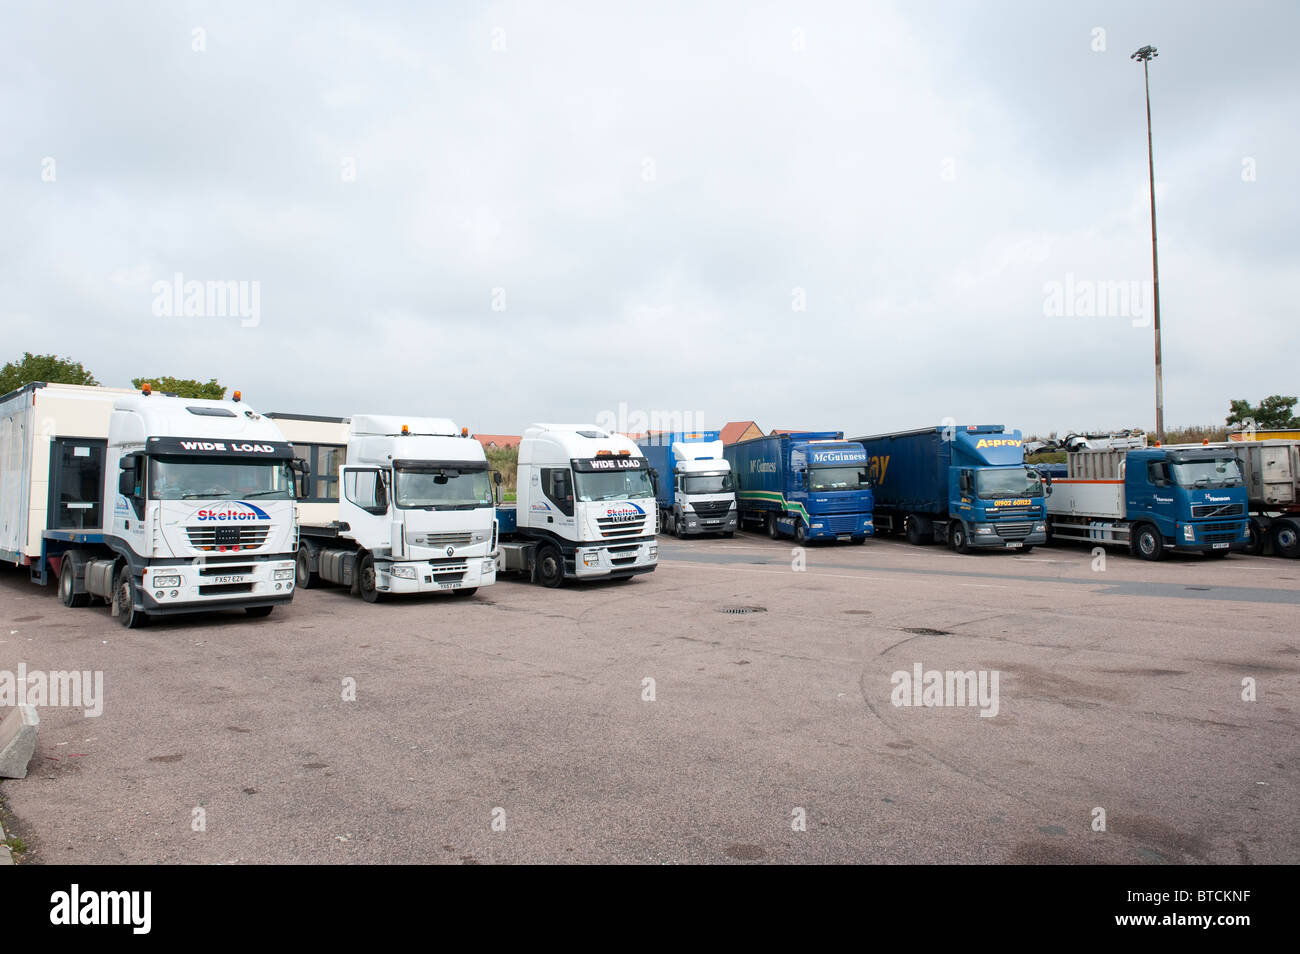 HGV lorries parked in a motorway service area in England. - Stock Image